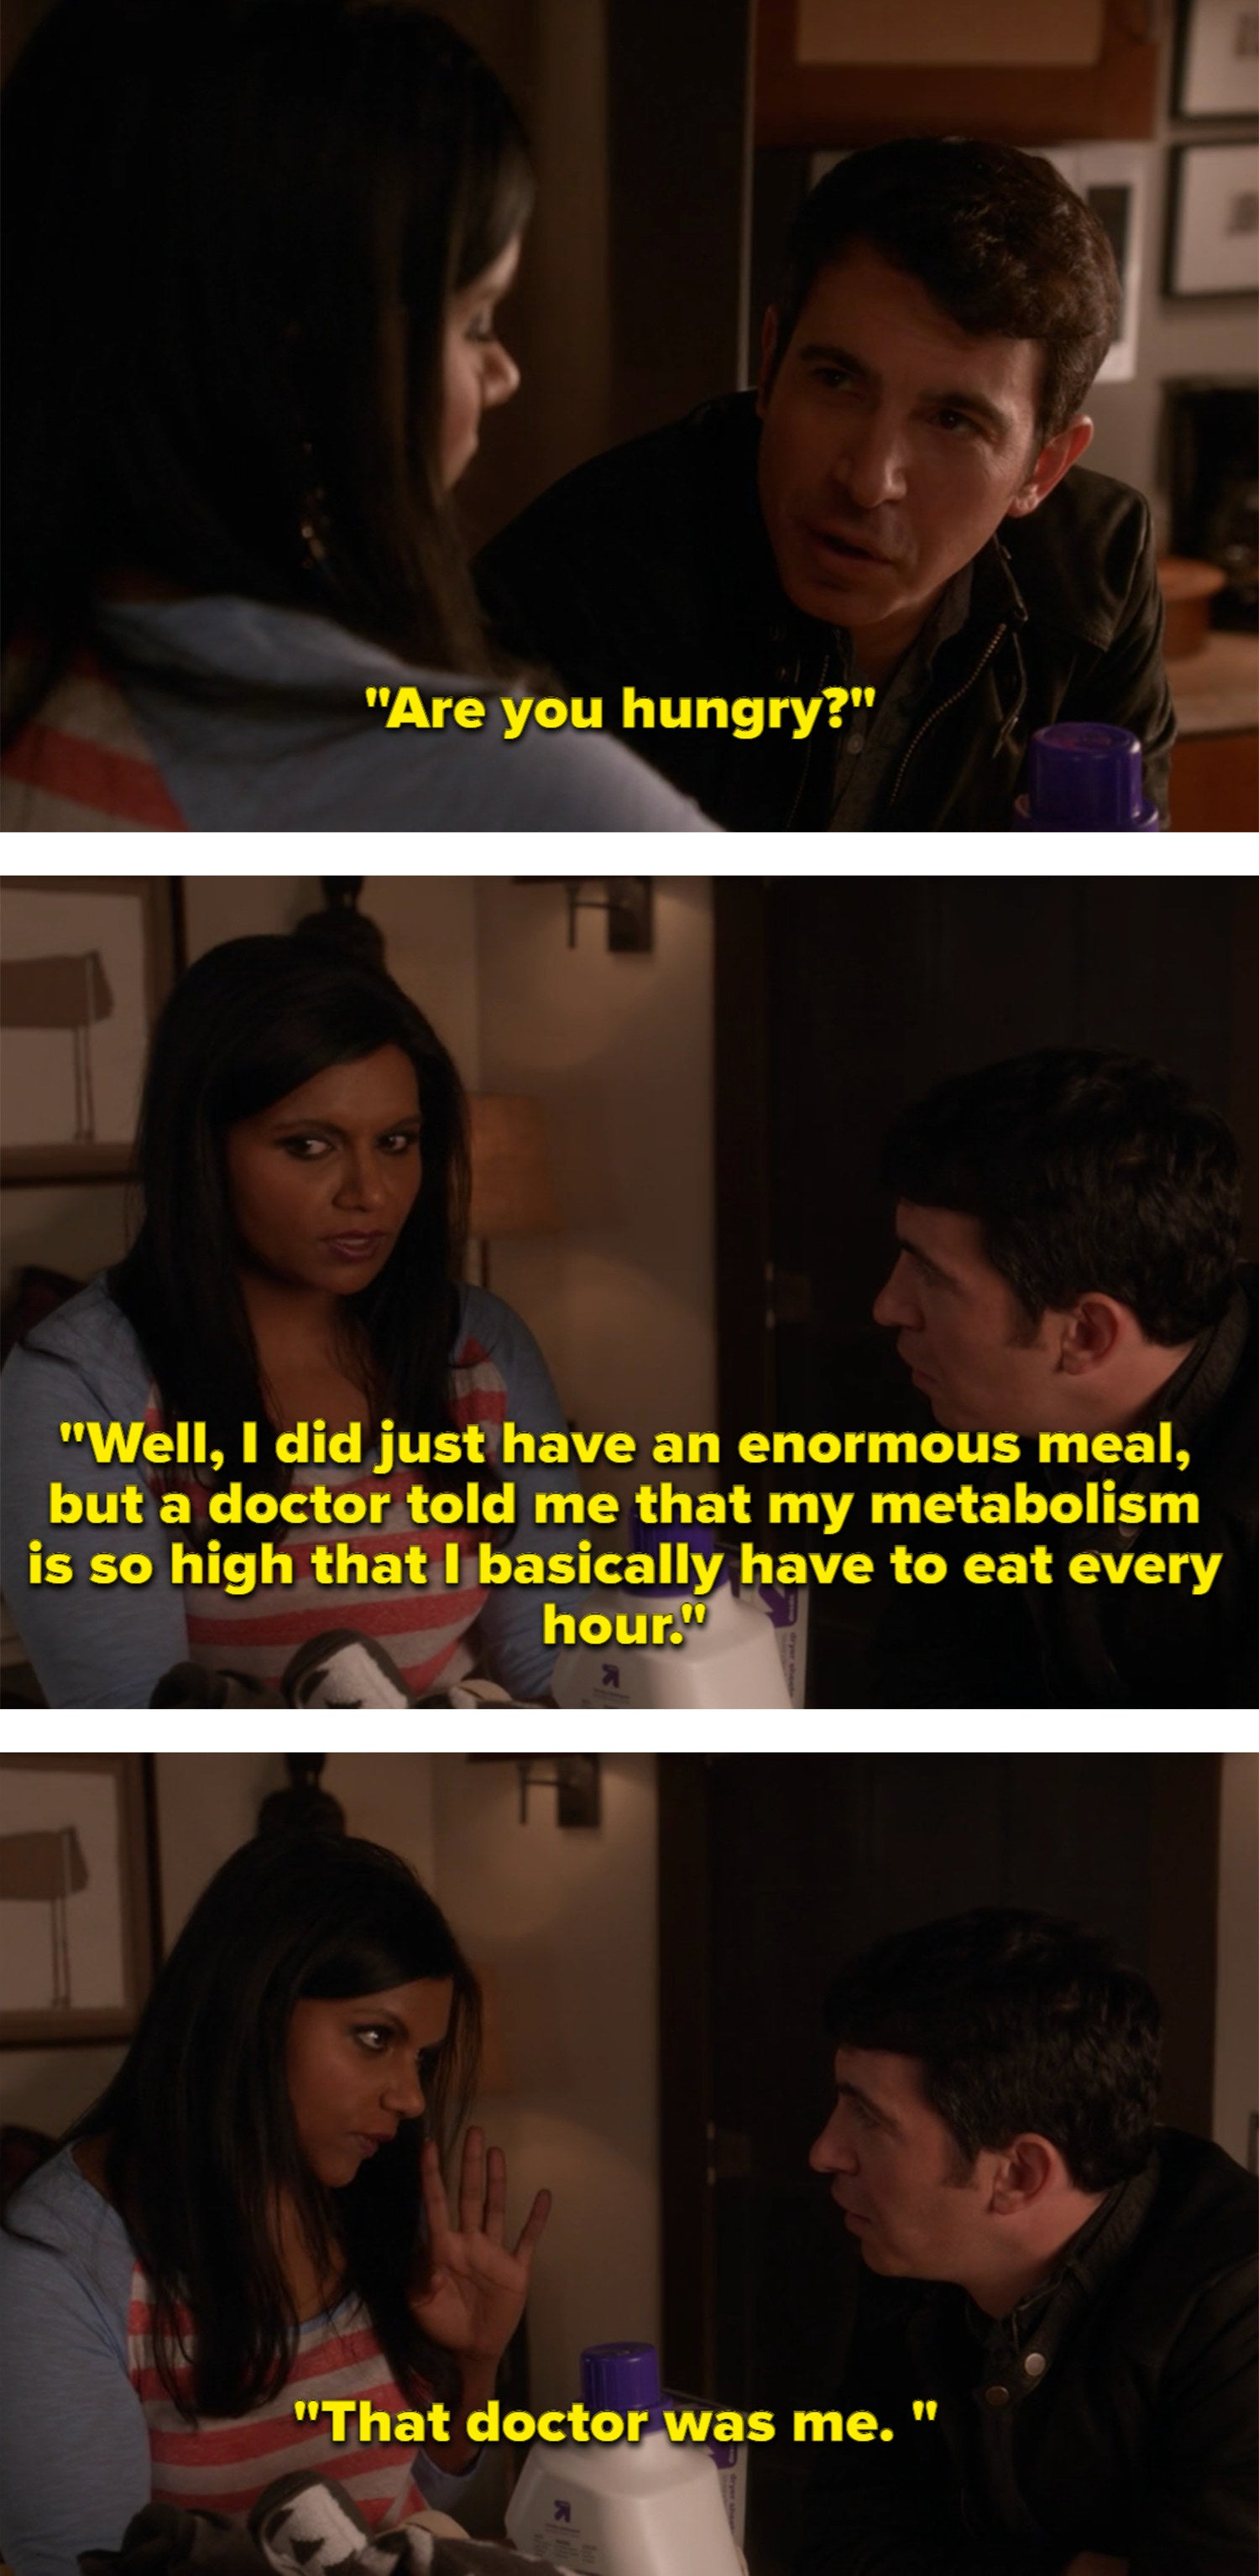 When Danny asks Mindy if she's hungry, she says she just had a ginormous meal but that her metabolism is so fast, her doctor said she can eat every hour. That doctor was her